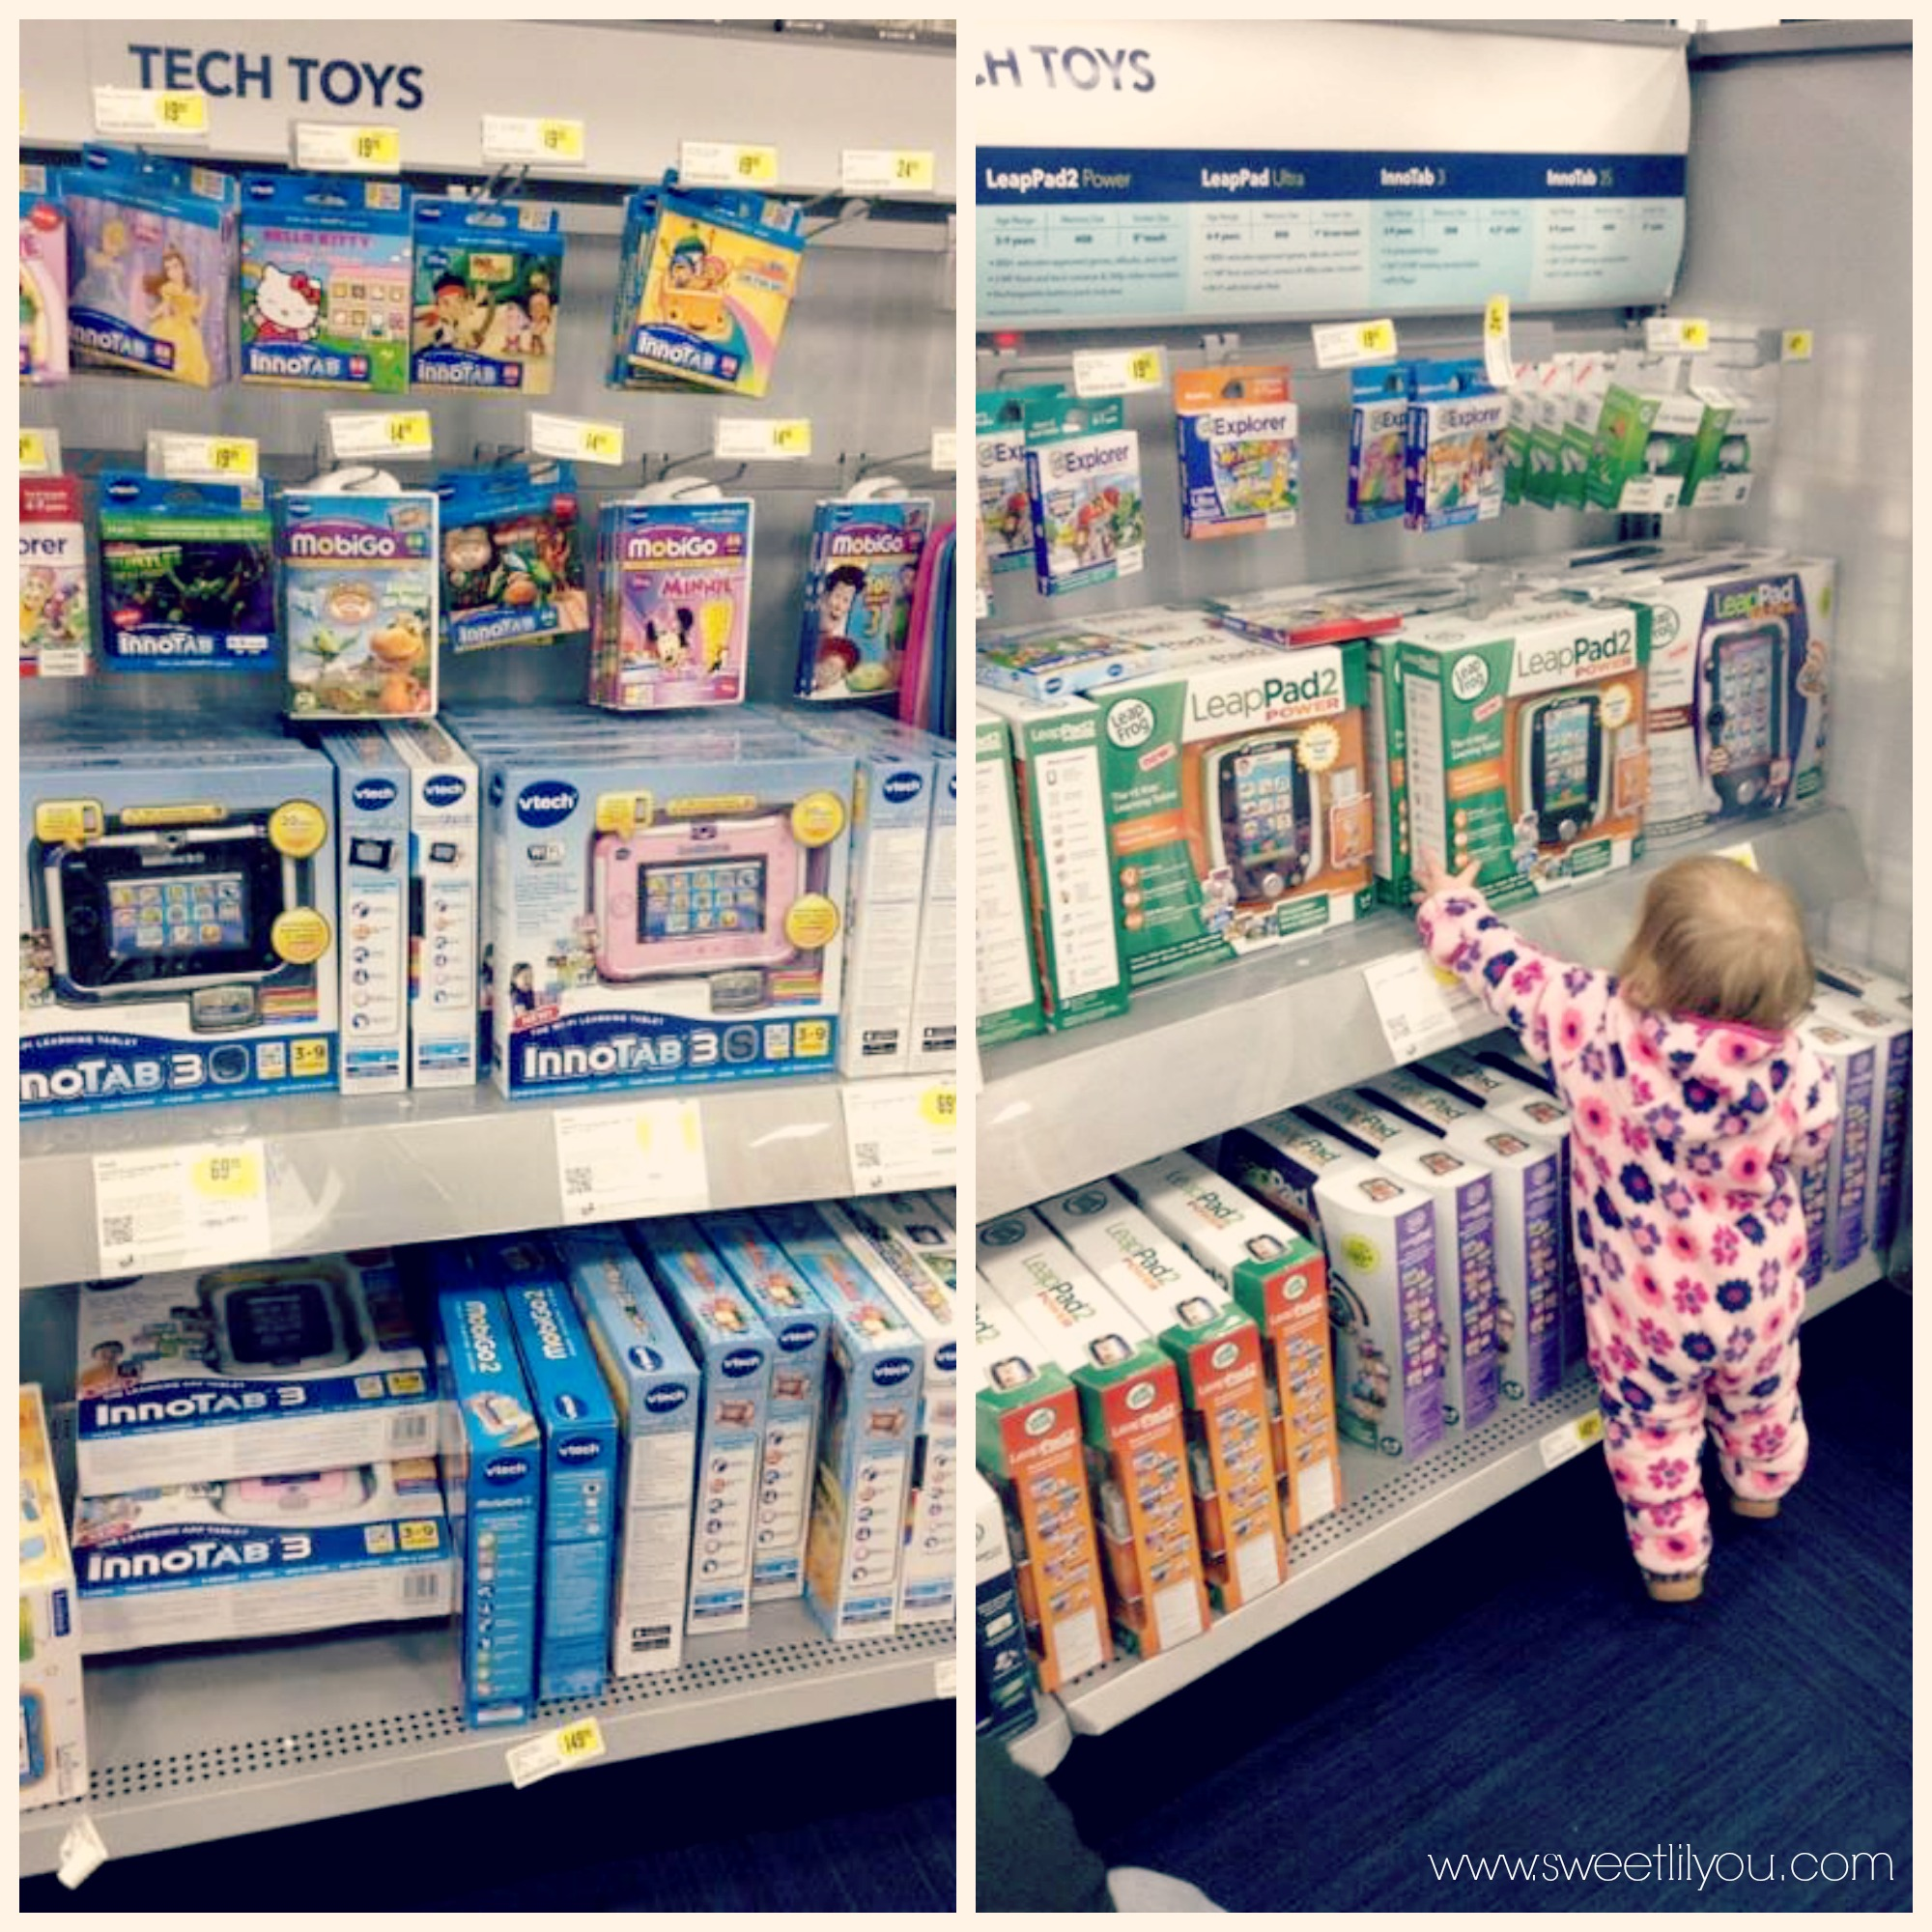 Cool Tech Gifts for Kids eBuyForAll sweet lil you